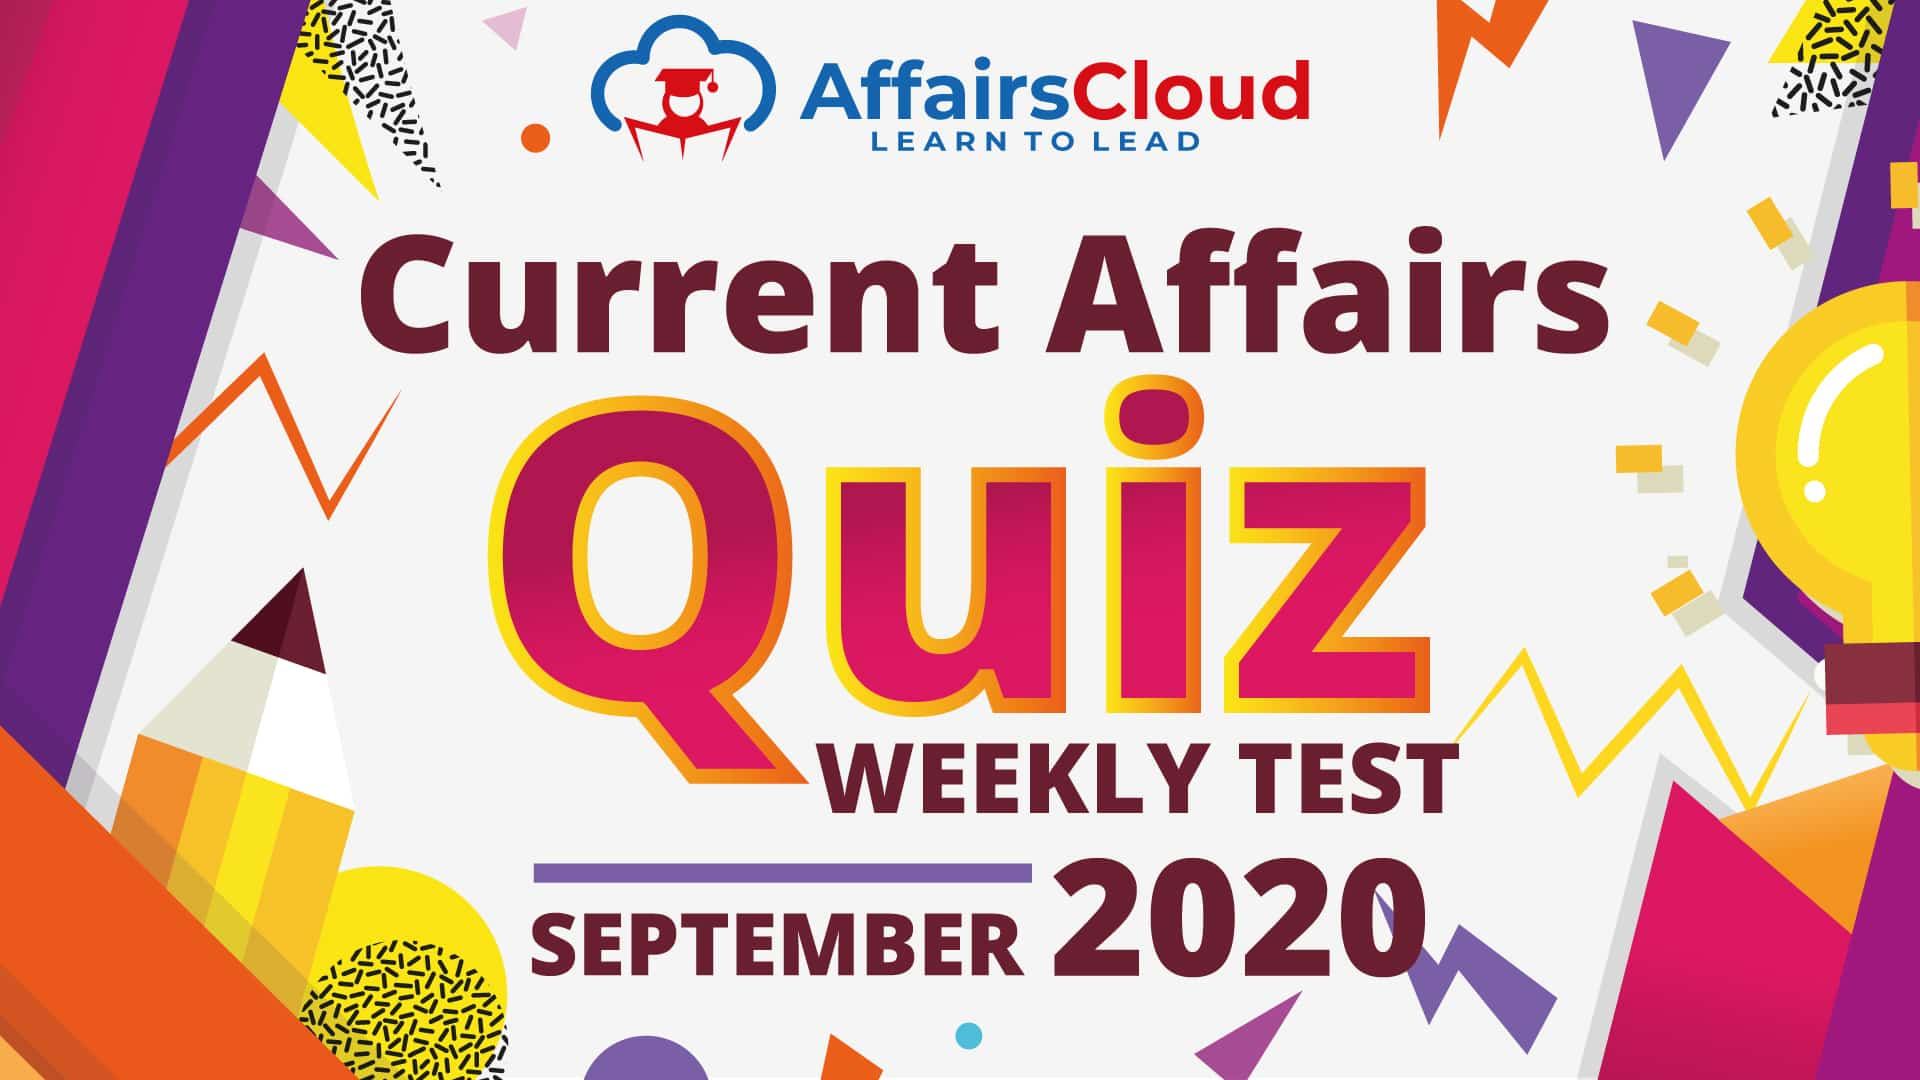 Current Affairs Weekly Quiz September 2020